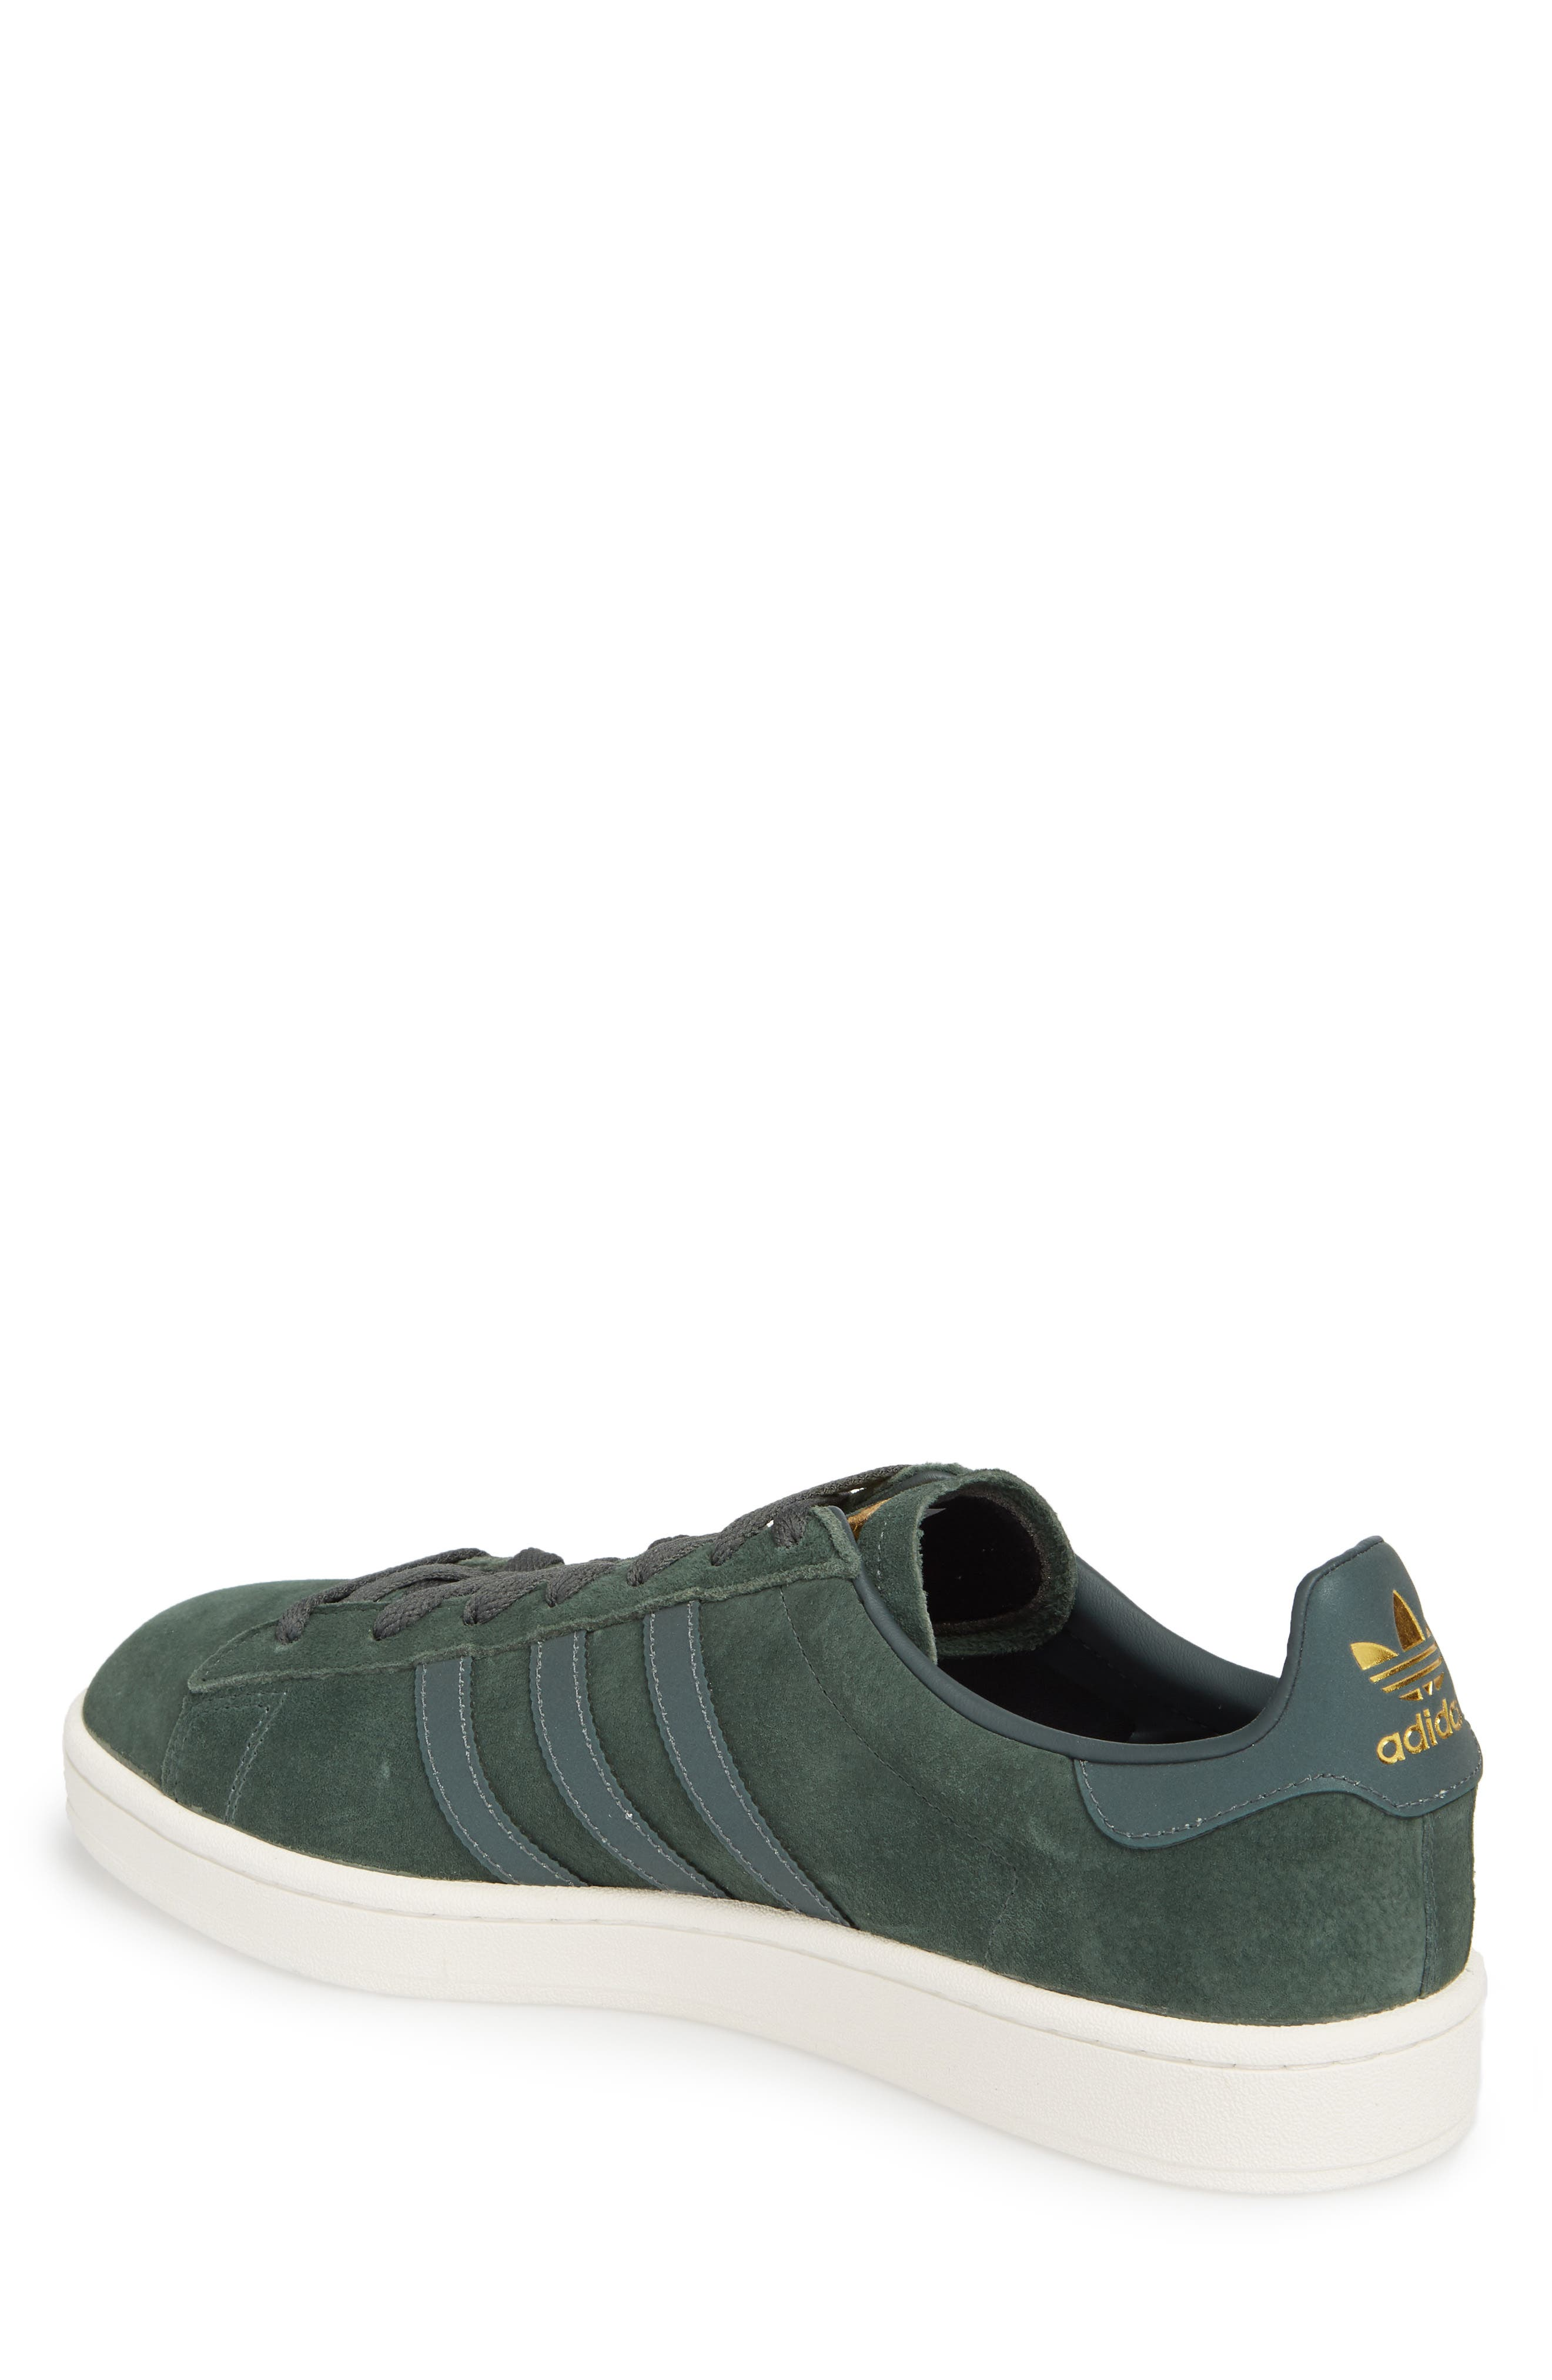 Campus Sneaker,                             Alternate thumbnail 2, color,                             Utility Ivy/ Reflective/ Gold